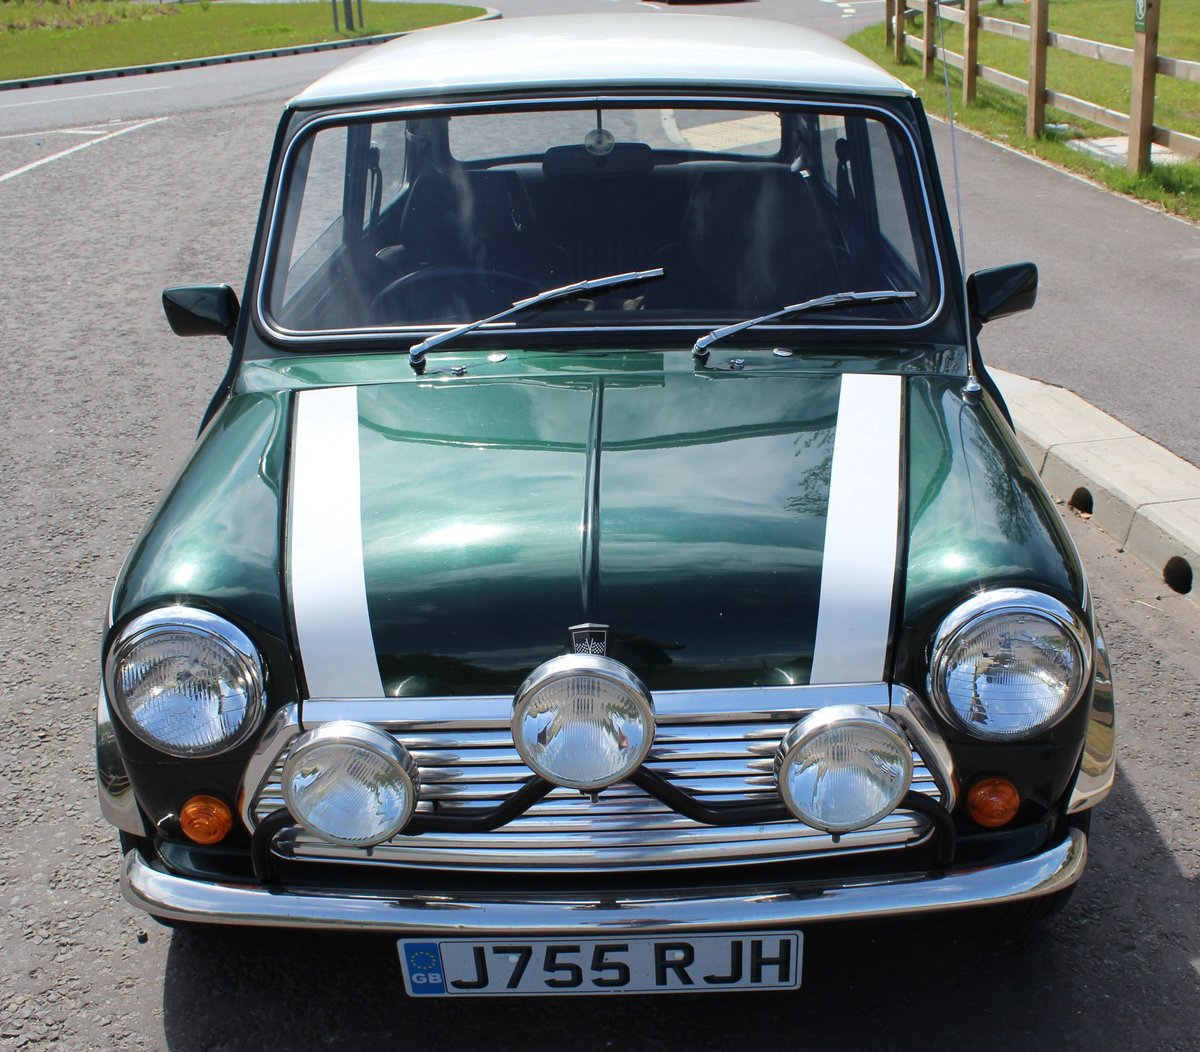 1991 Mini Cooper 1275 cc Normally Aspirated 82,000 Miles For Sale (picture 2 of 6)